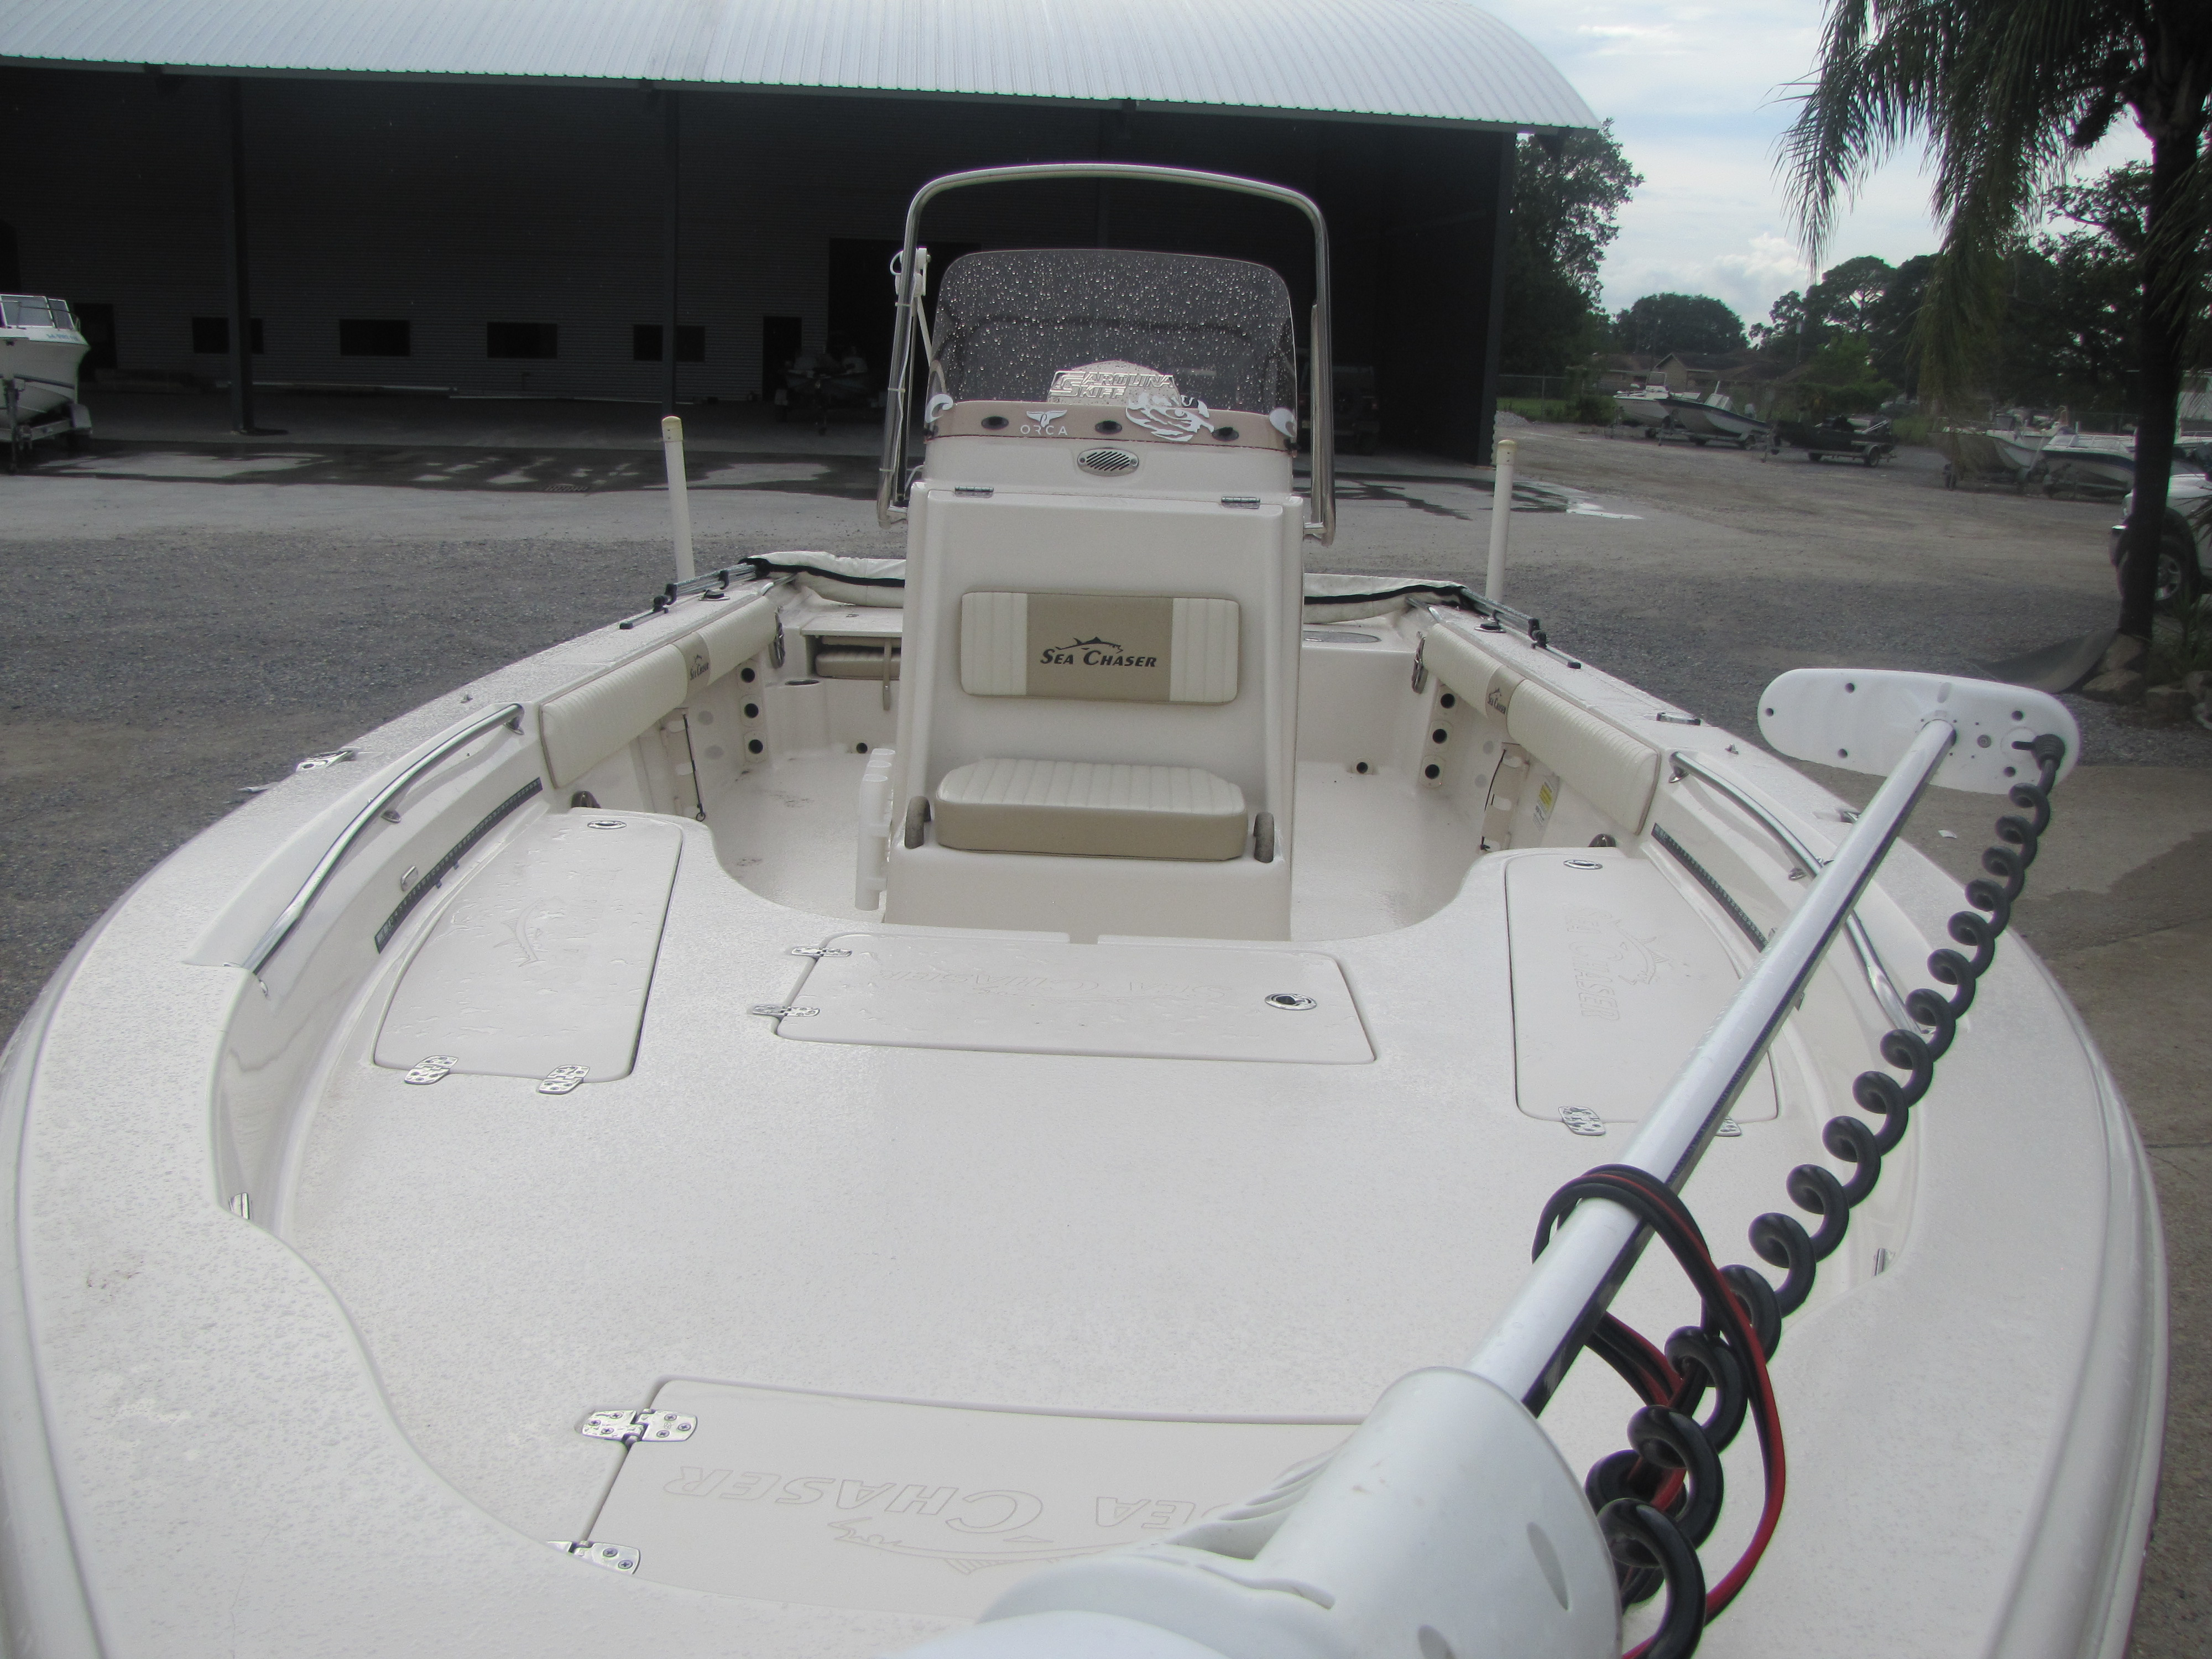 2018 Sea Chaser boat for sale, model of the boat is 23 LX & Image # 3 of 19